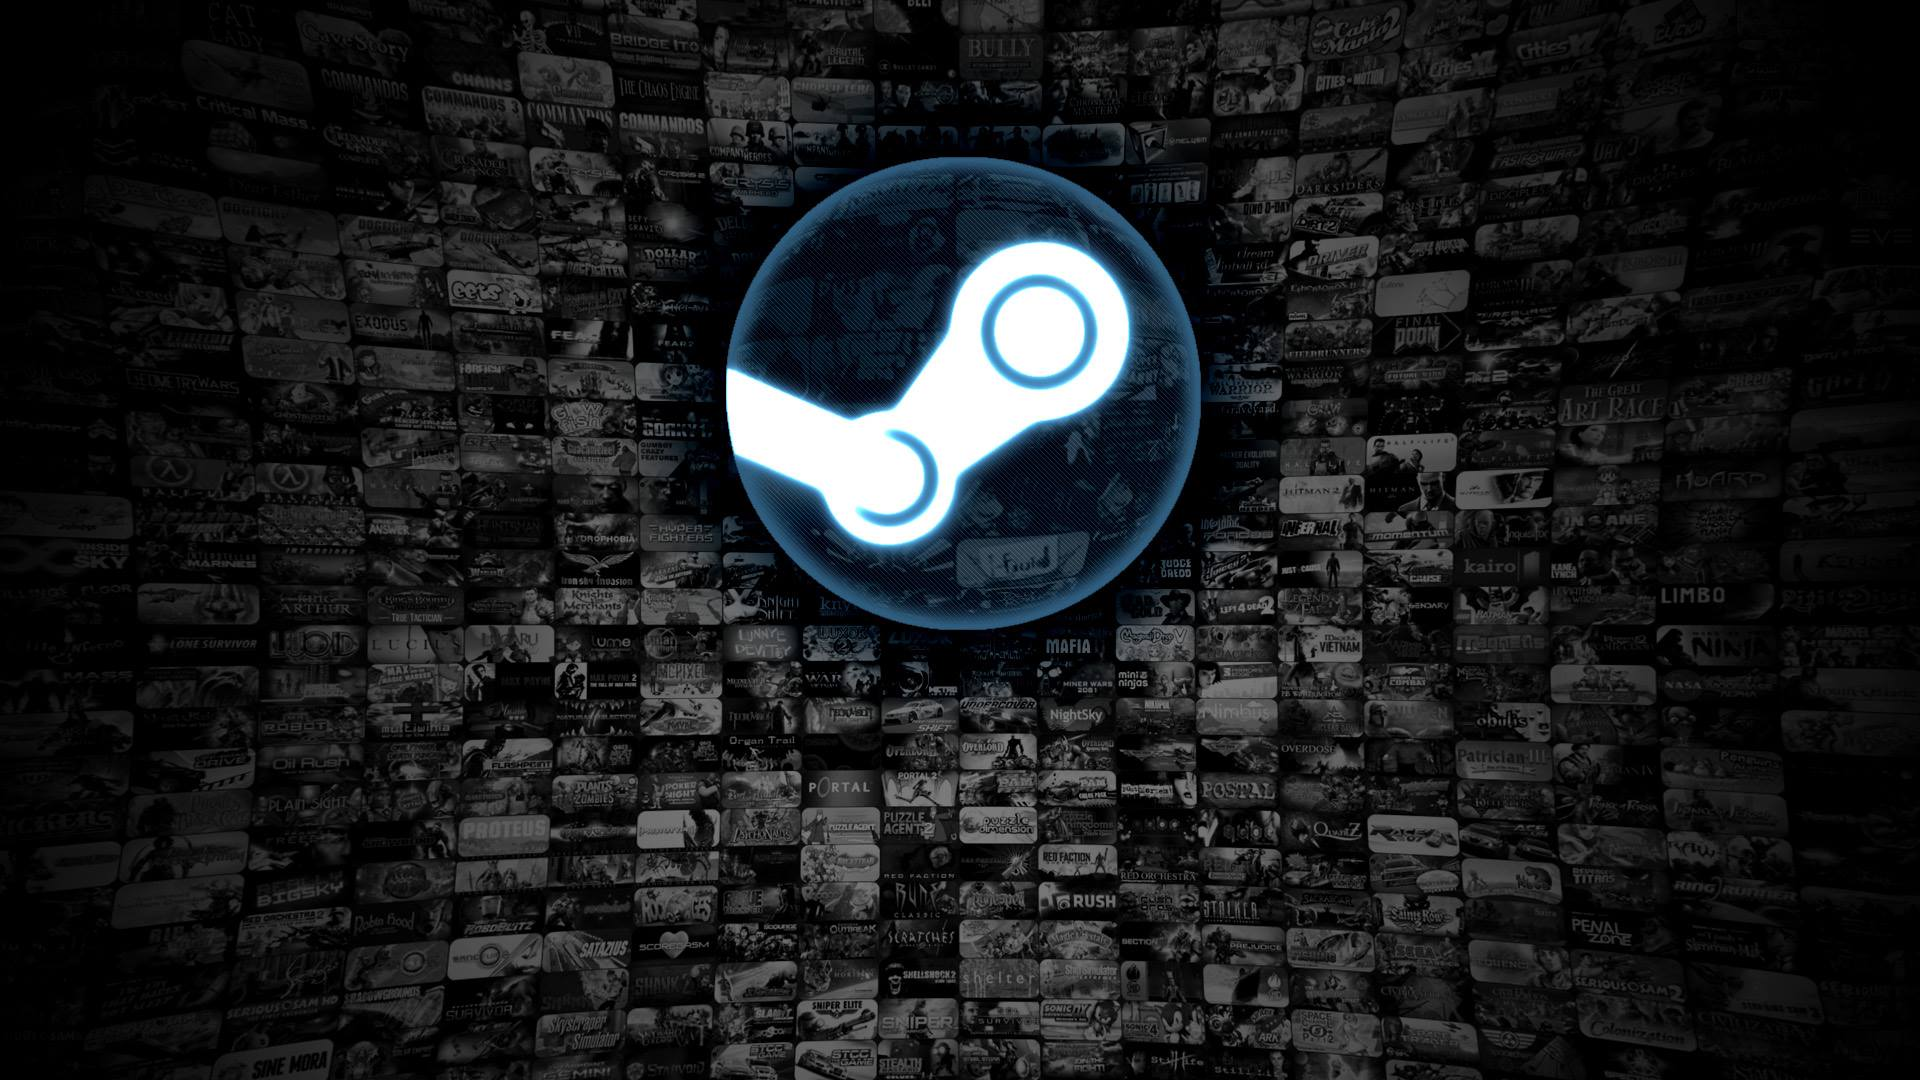 Steam wallpaper (Xpost from /r/wallpaper) ...